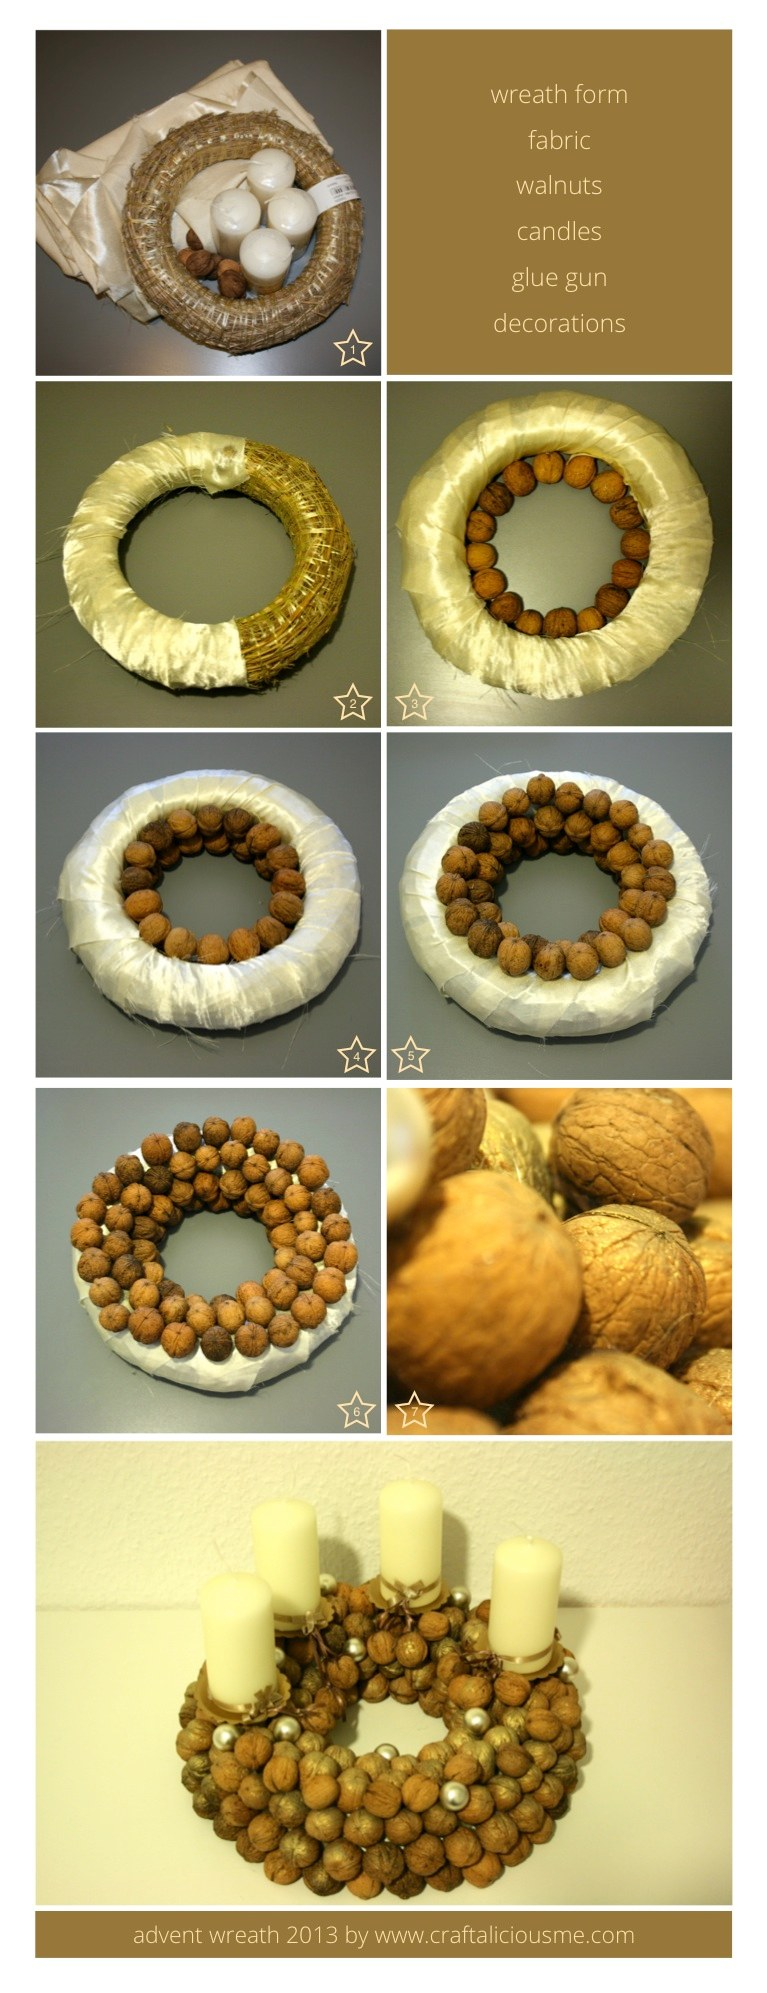 walnut advent wreath tutorial